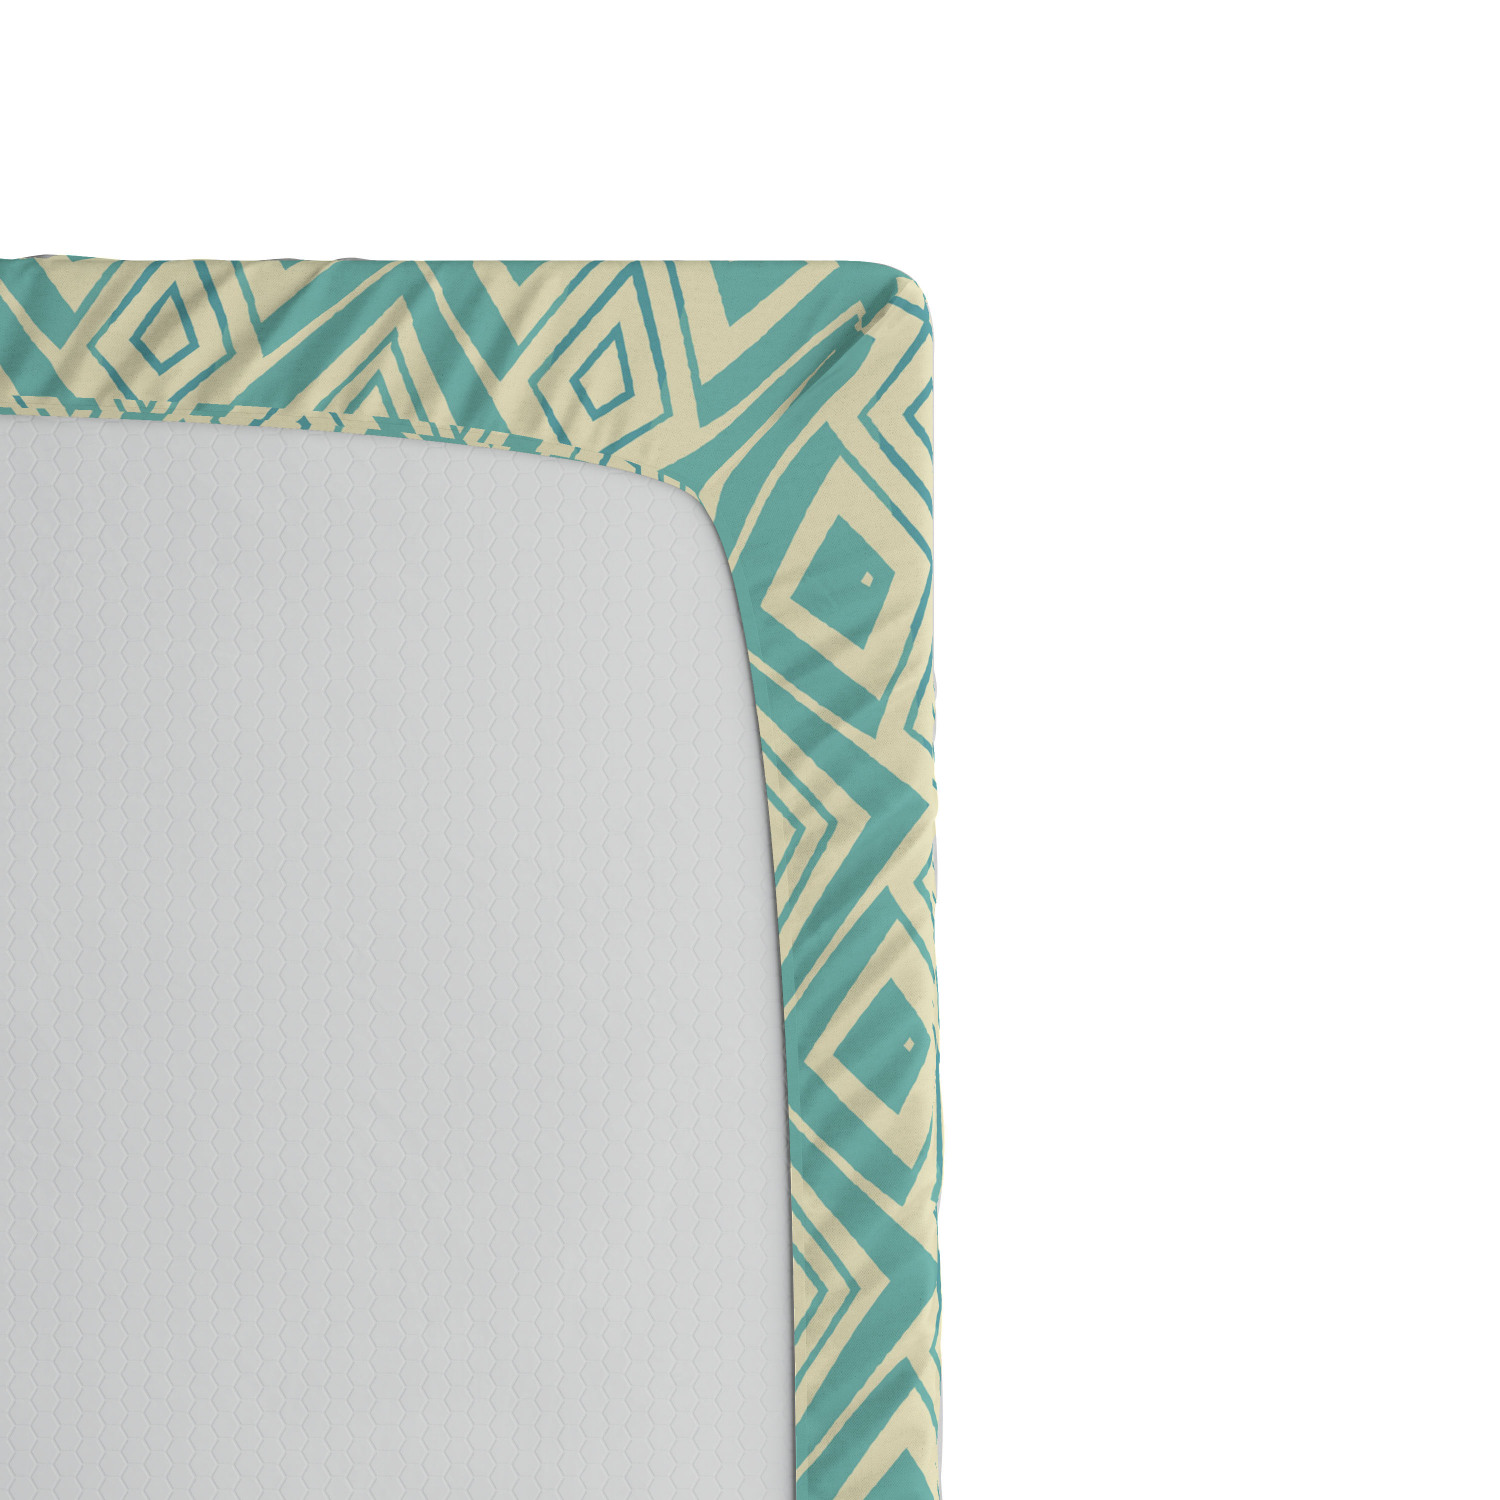 Details about  /Tribal Ethnic Fitted Sheet Cover with All-Round Elastic Pocket in 4 Sizes